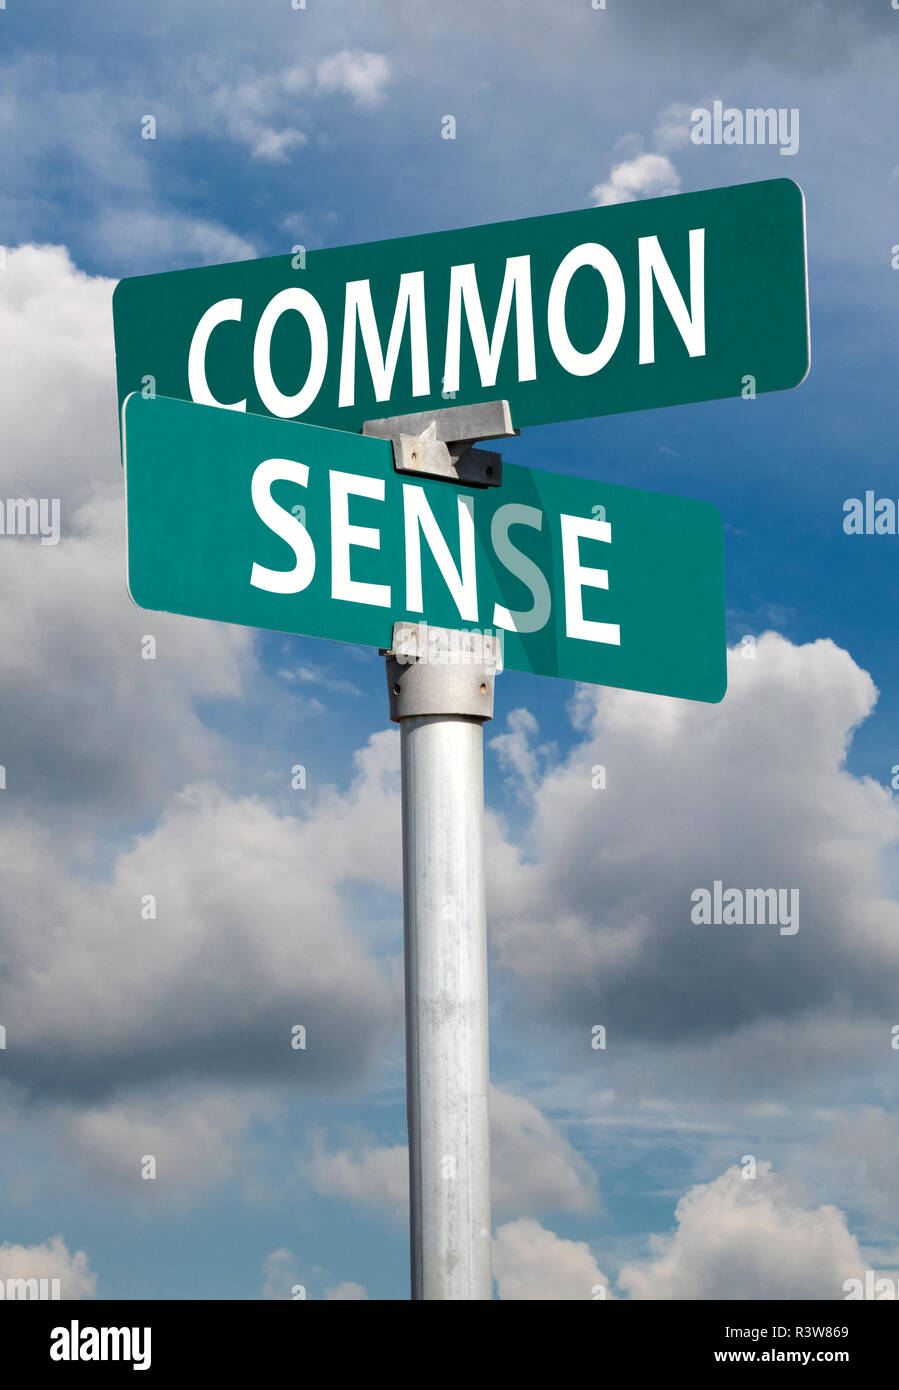 Common sense sign - Stock Image